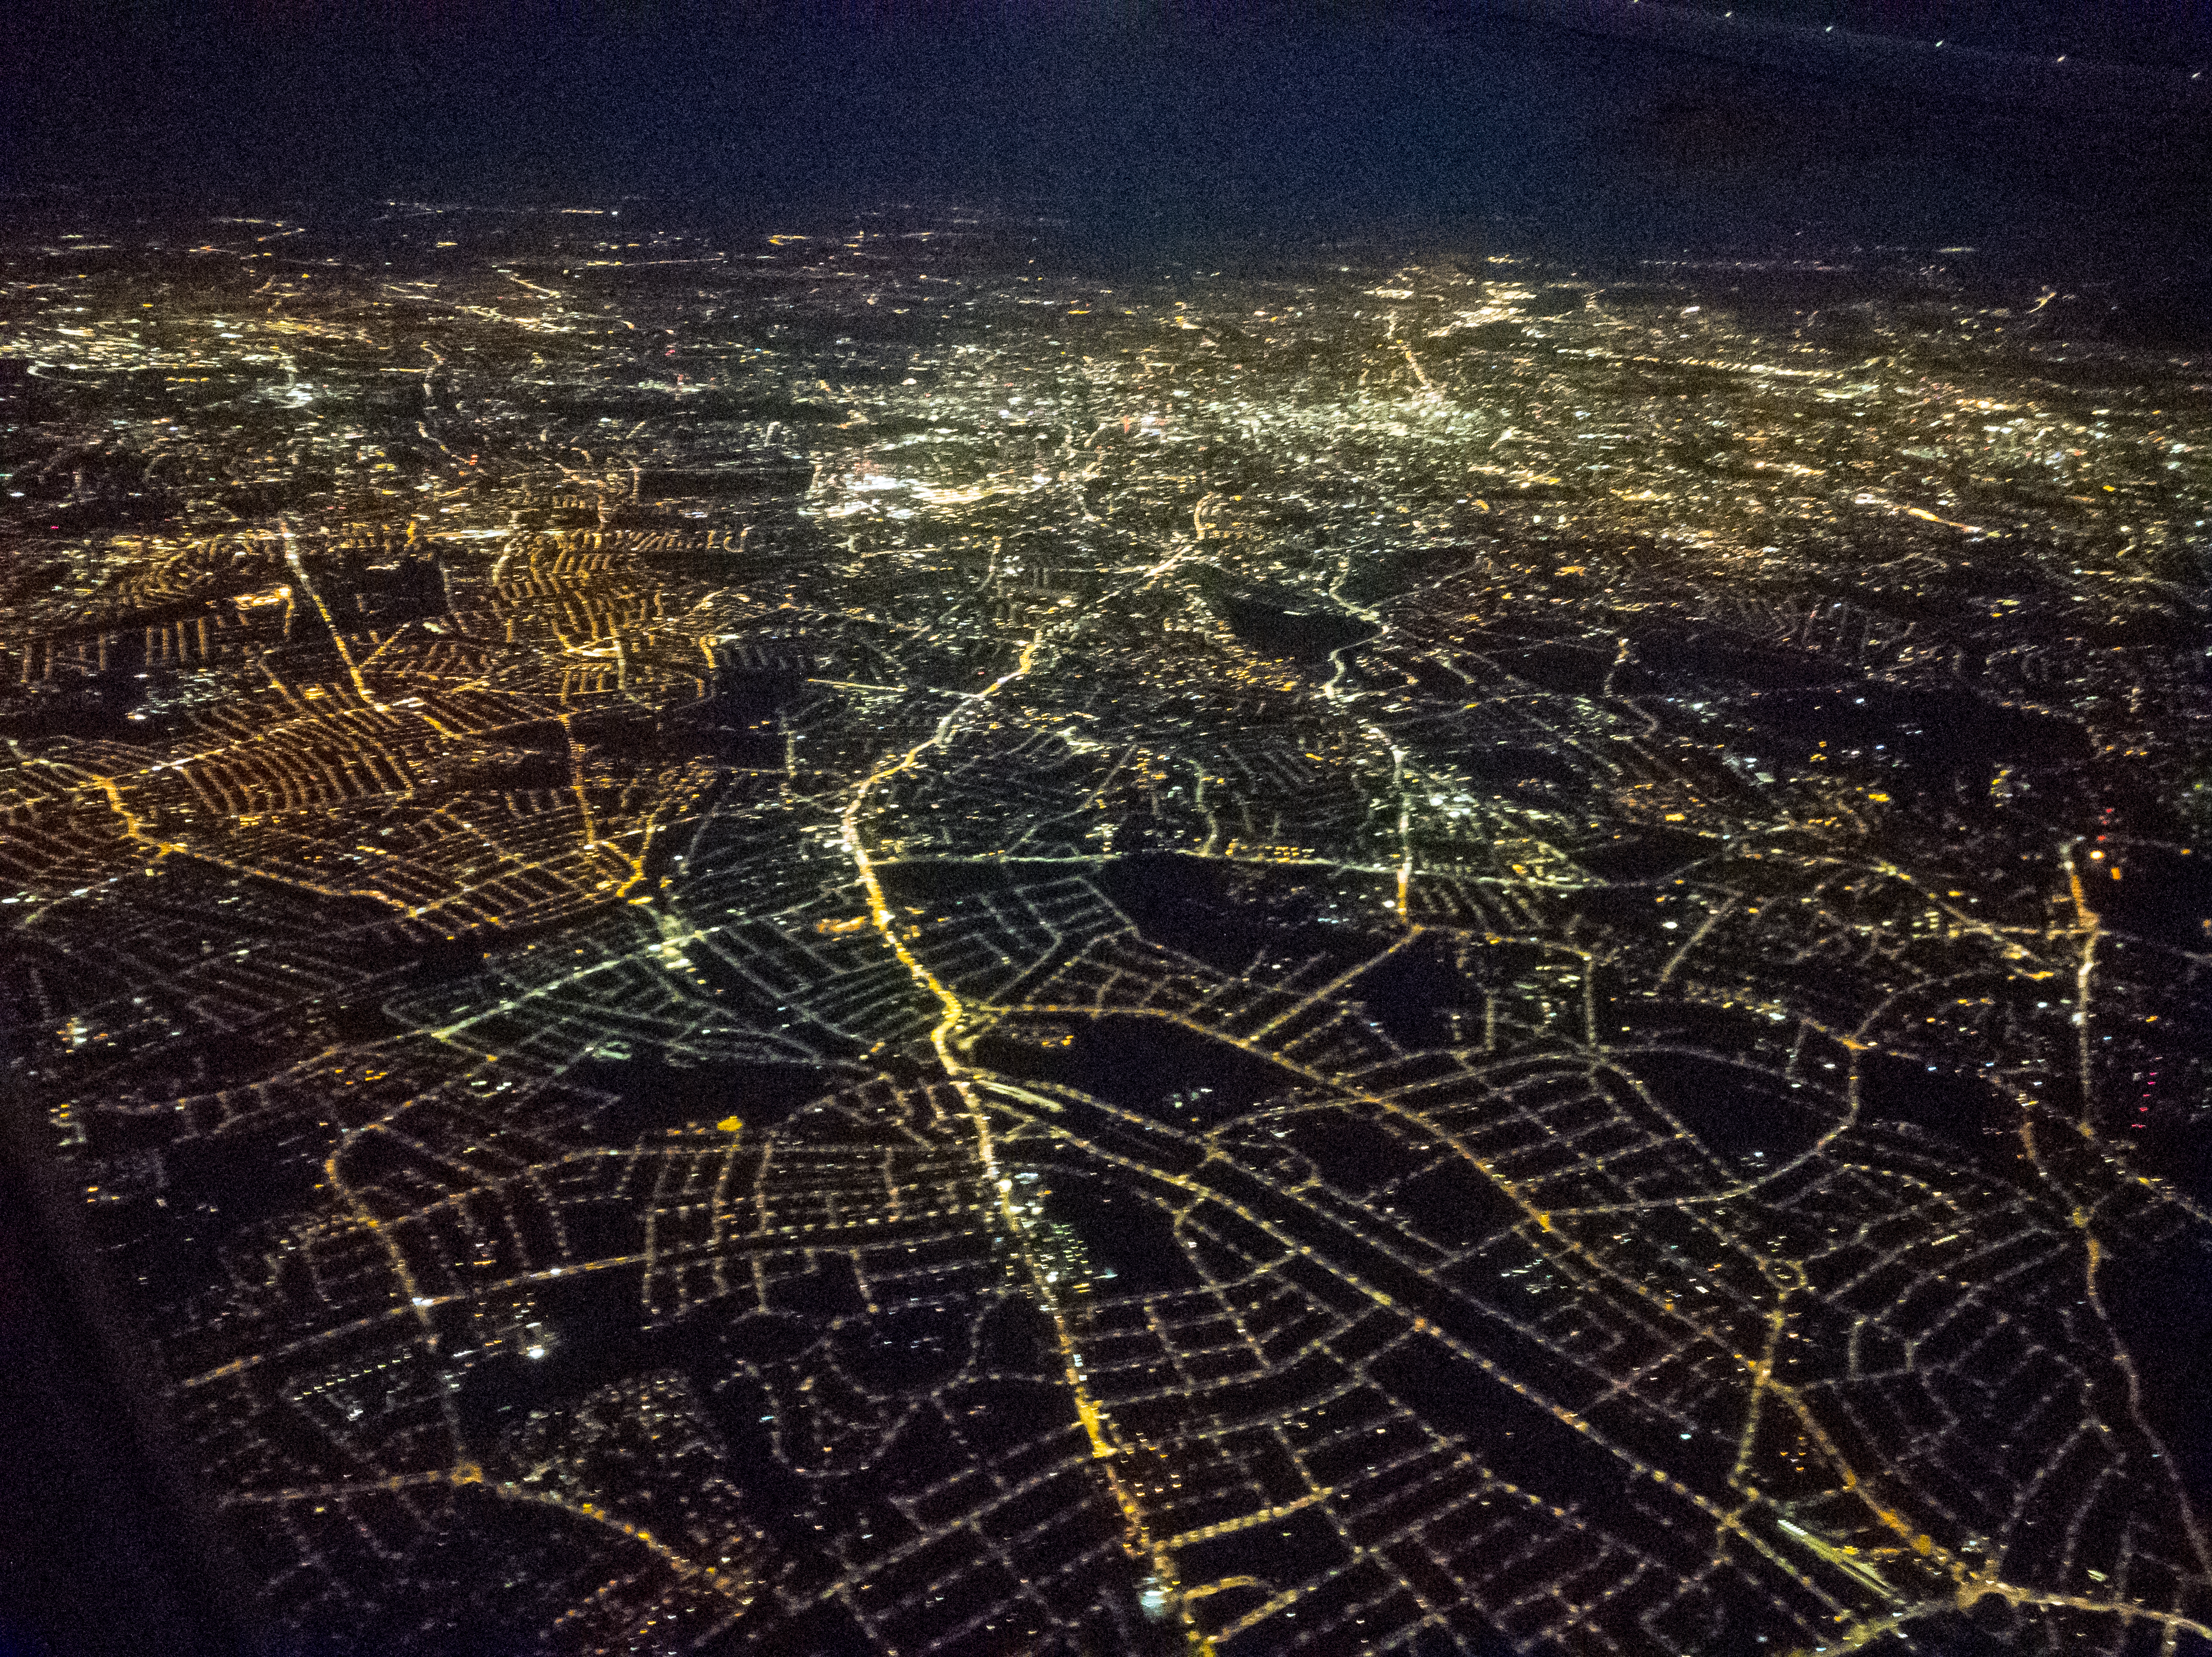 London, before dawn, from above